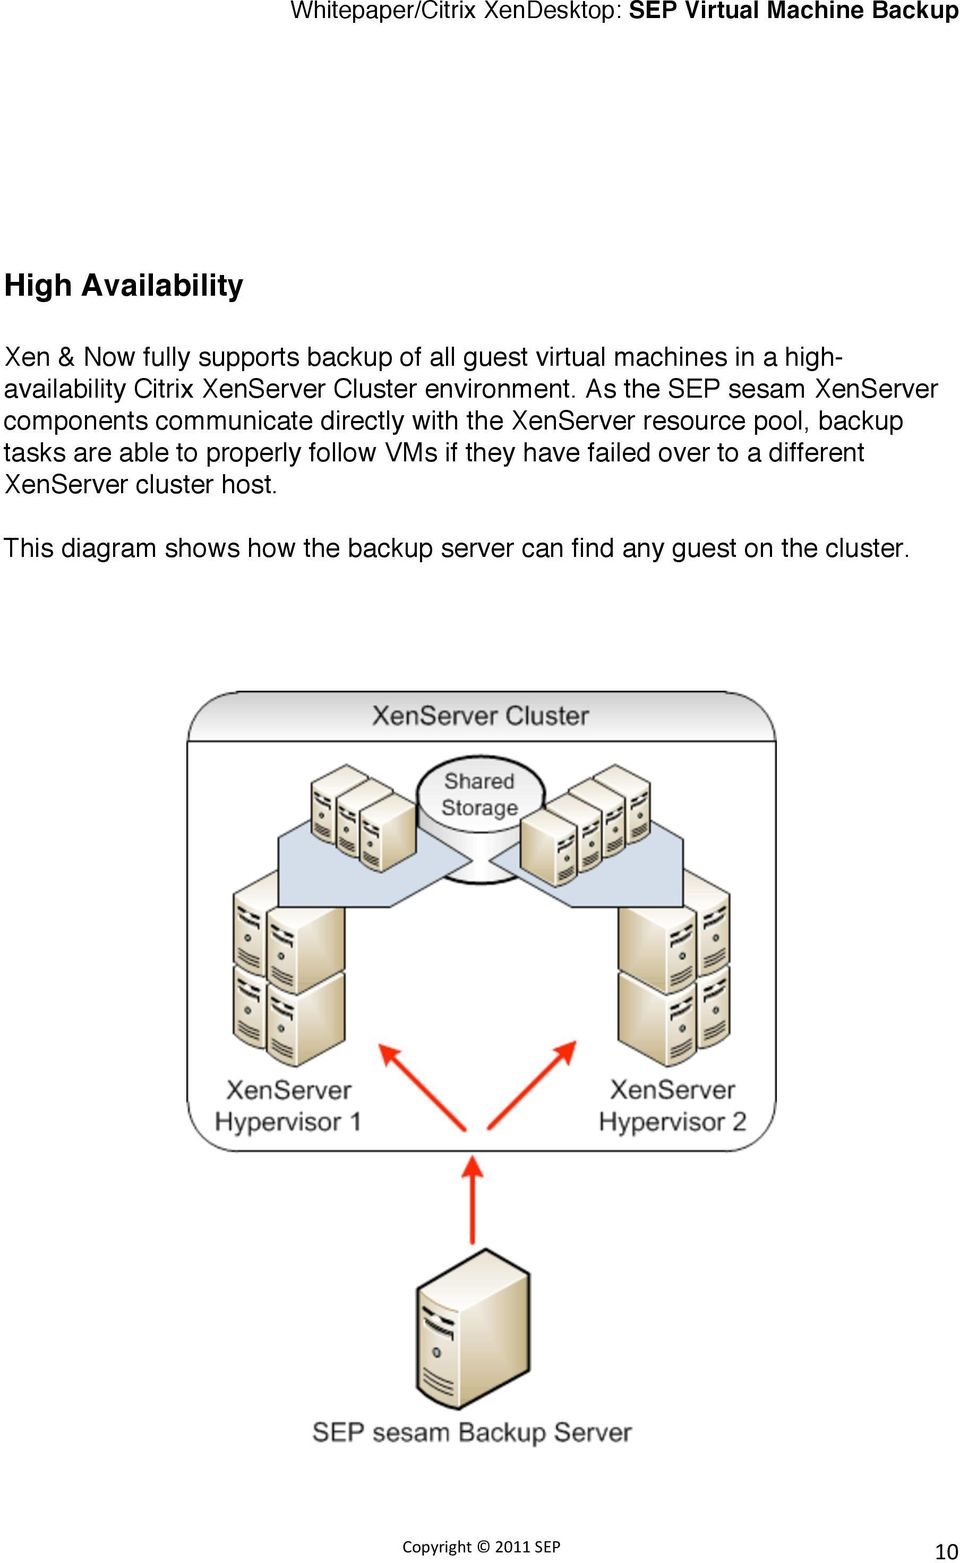 As the SEP sesam XenServer components communicate directly with the XenServer resource pool, backup tasks are